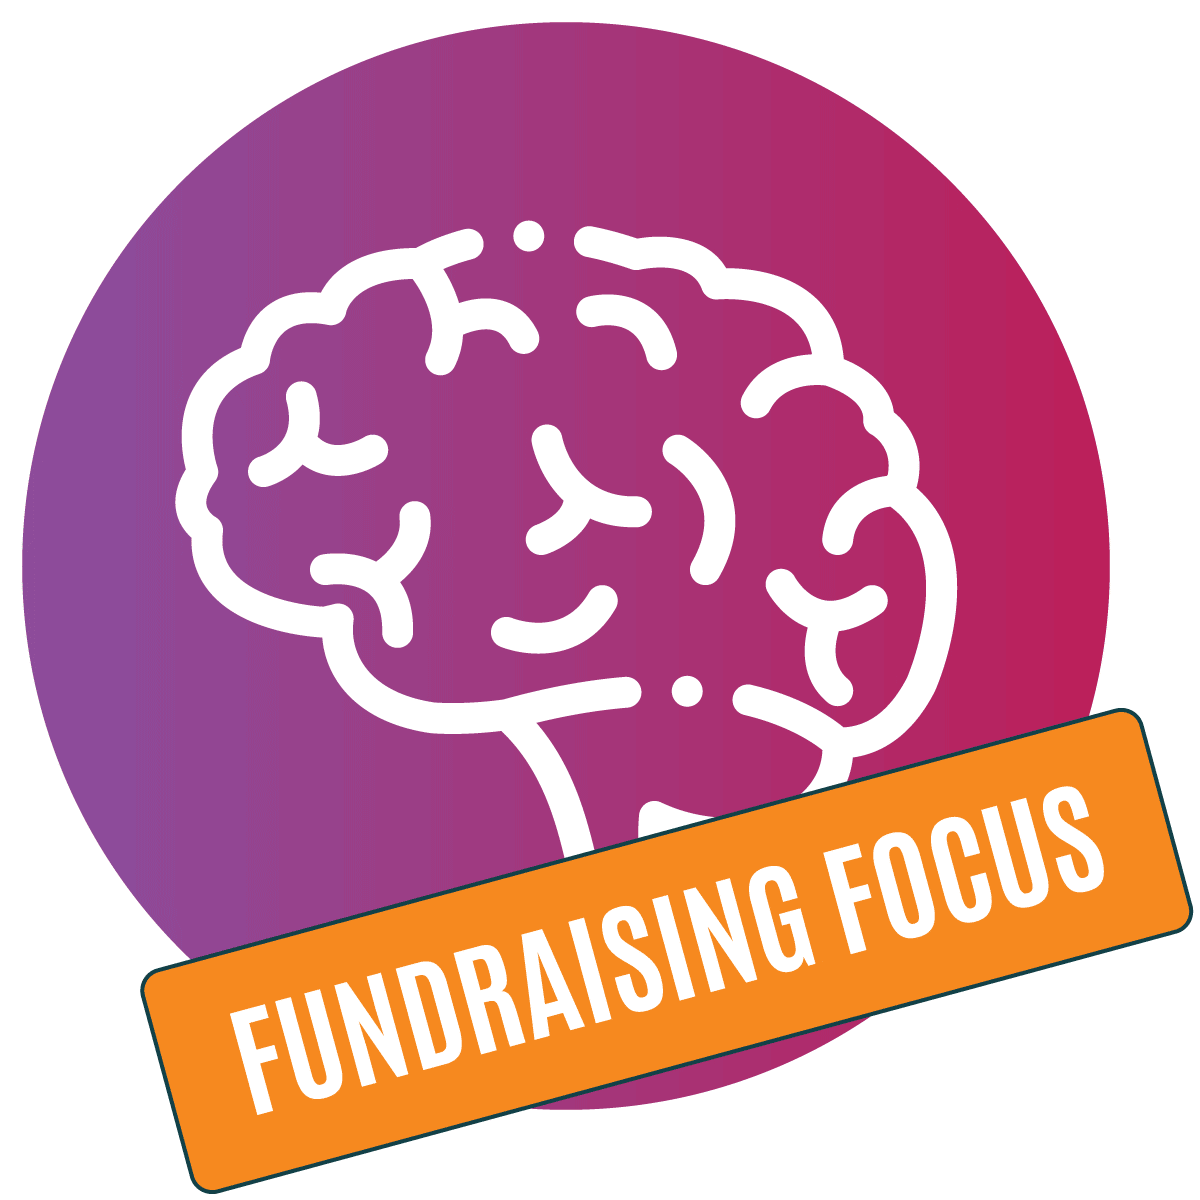 Decision Science   Brain Icon   Change For Better - Fundraising Focus